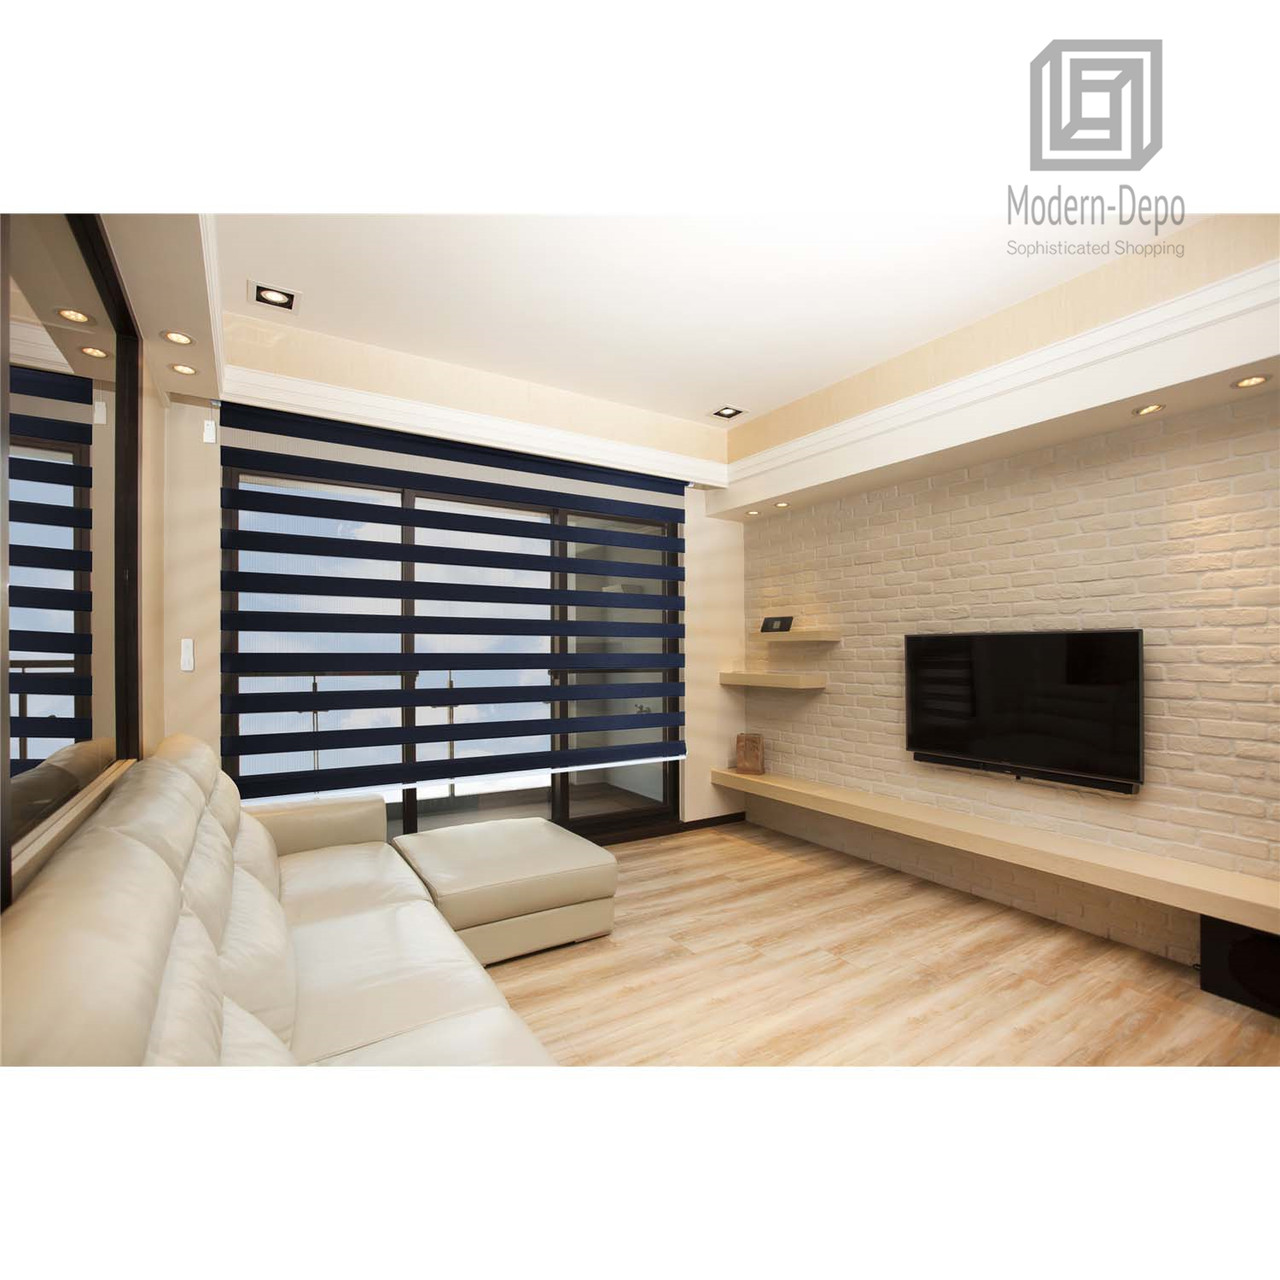 Zebra Design Roller Window Shades Motorized Remote Privacy Horizontal Blinds 35 W X 72 H Charcoal Modern Depo